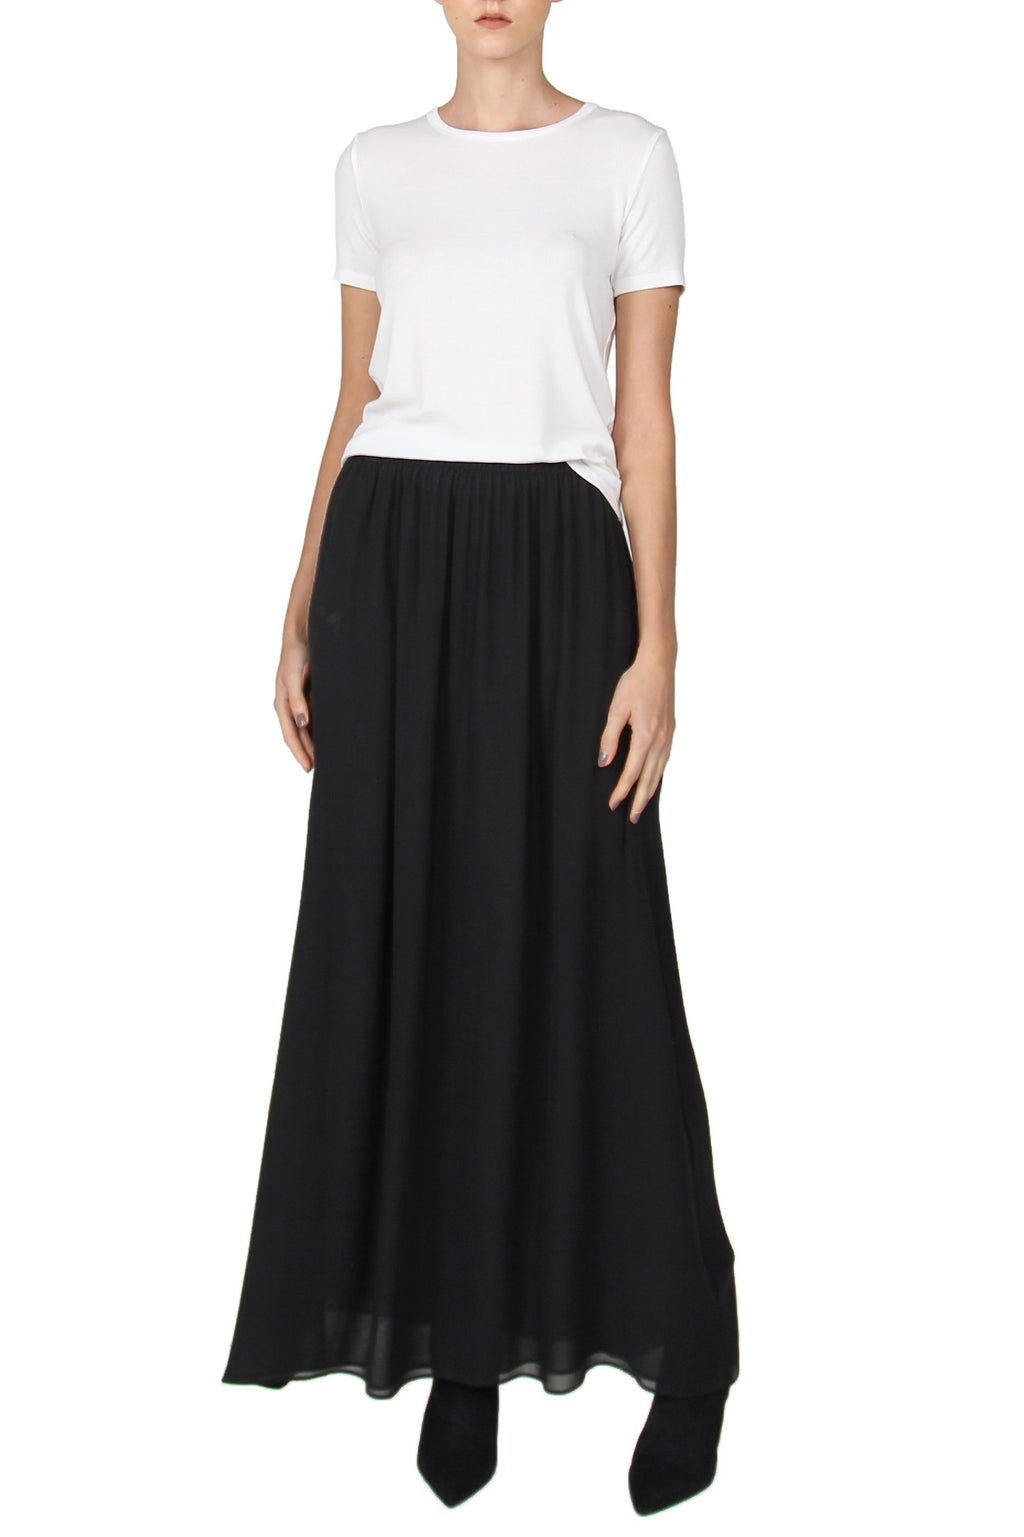 Double Georgette Skirt Marie France Van Damme 0 Black